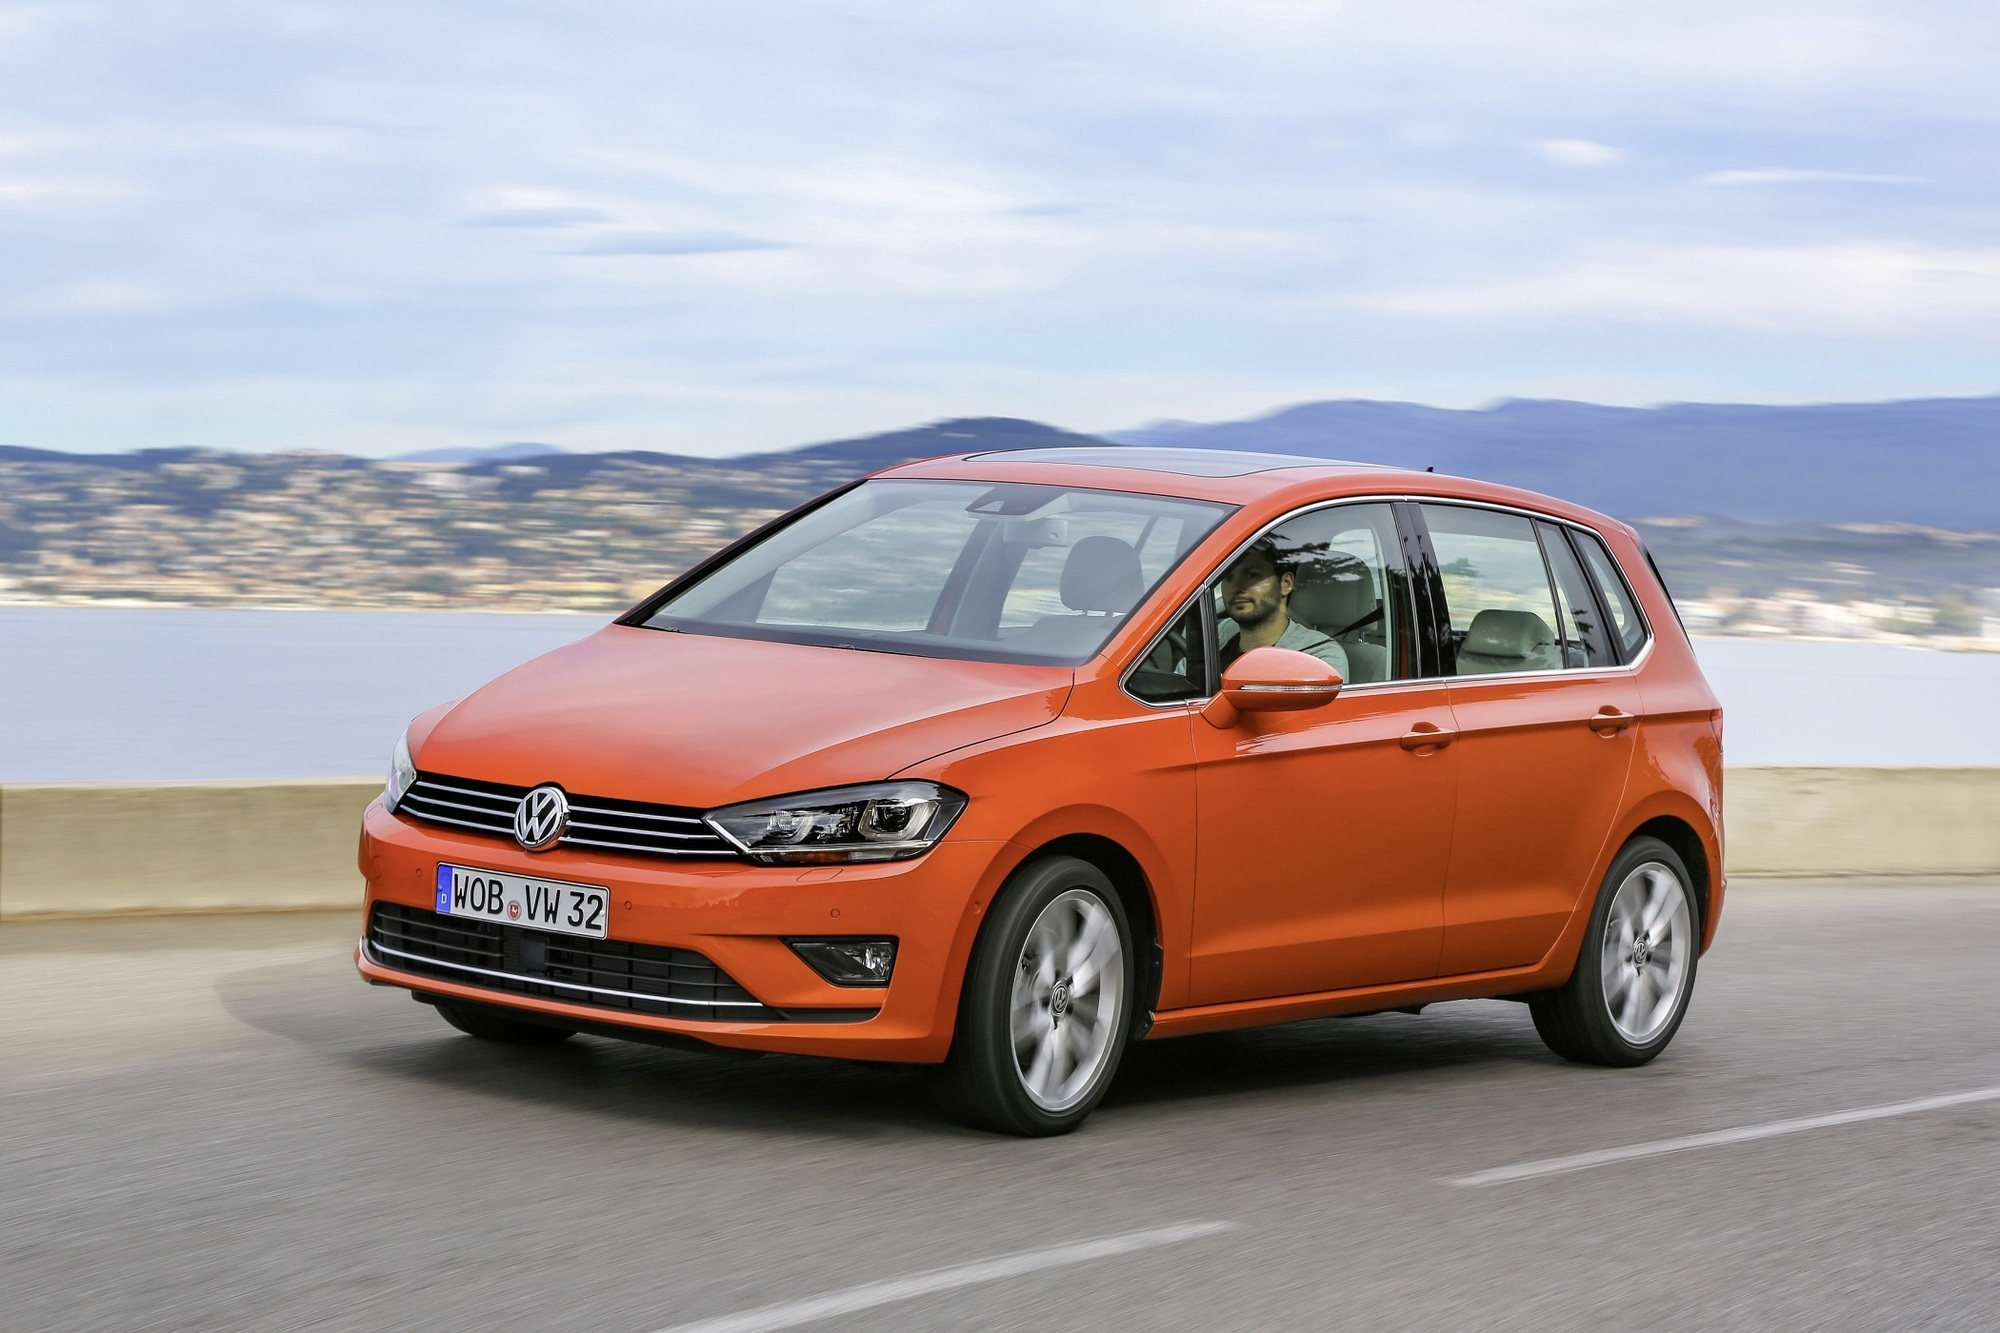 Test: VW Golf Sportsvan - Plus minus plump